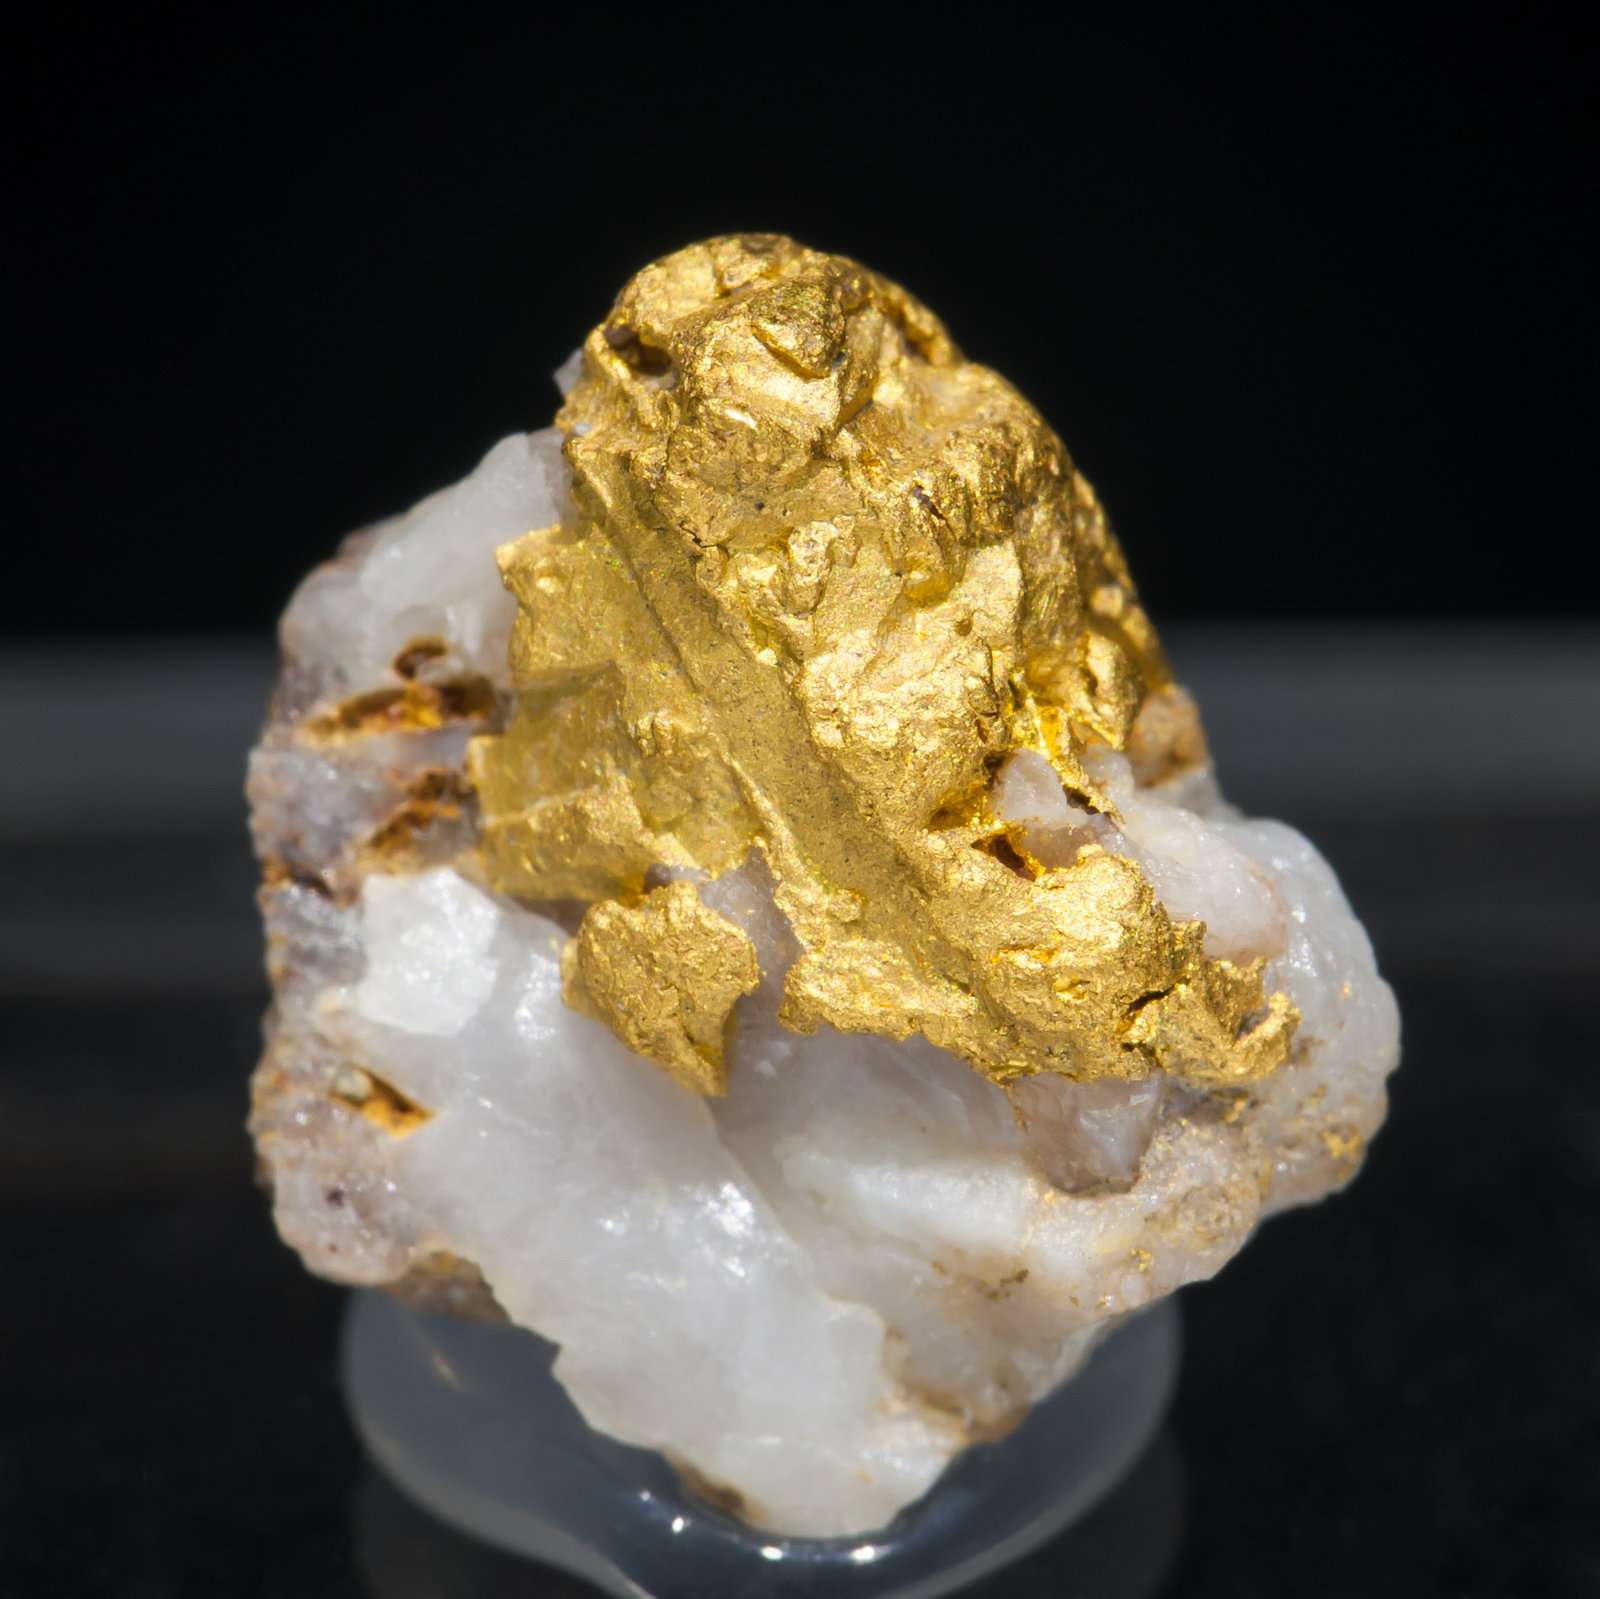 specimens/s_imagesAC4/Gold-ND67AC4f.jpg